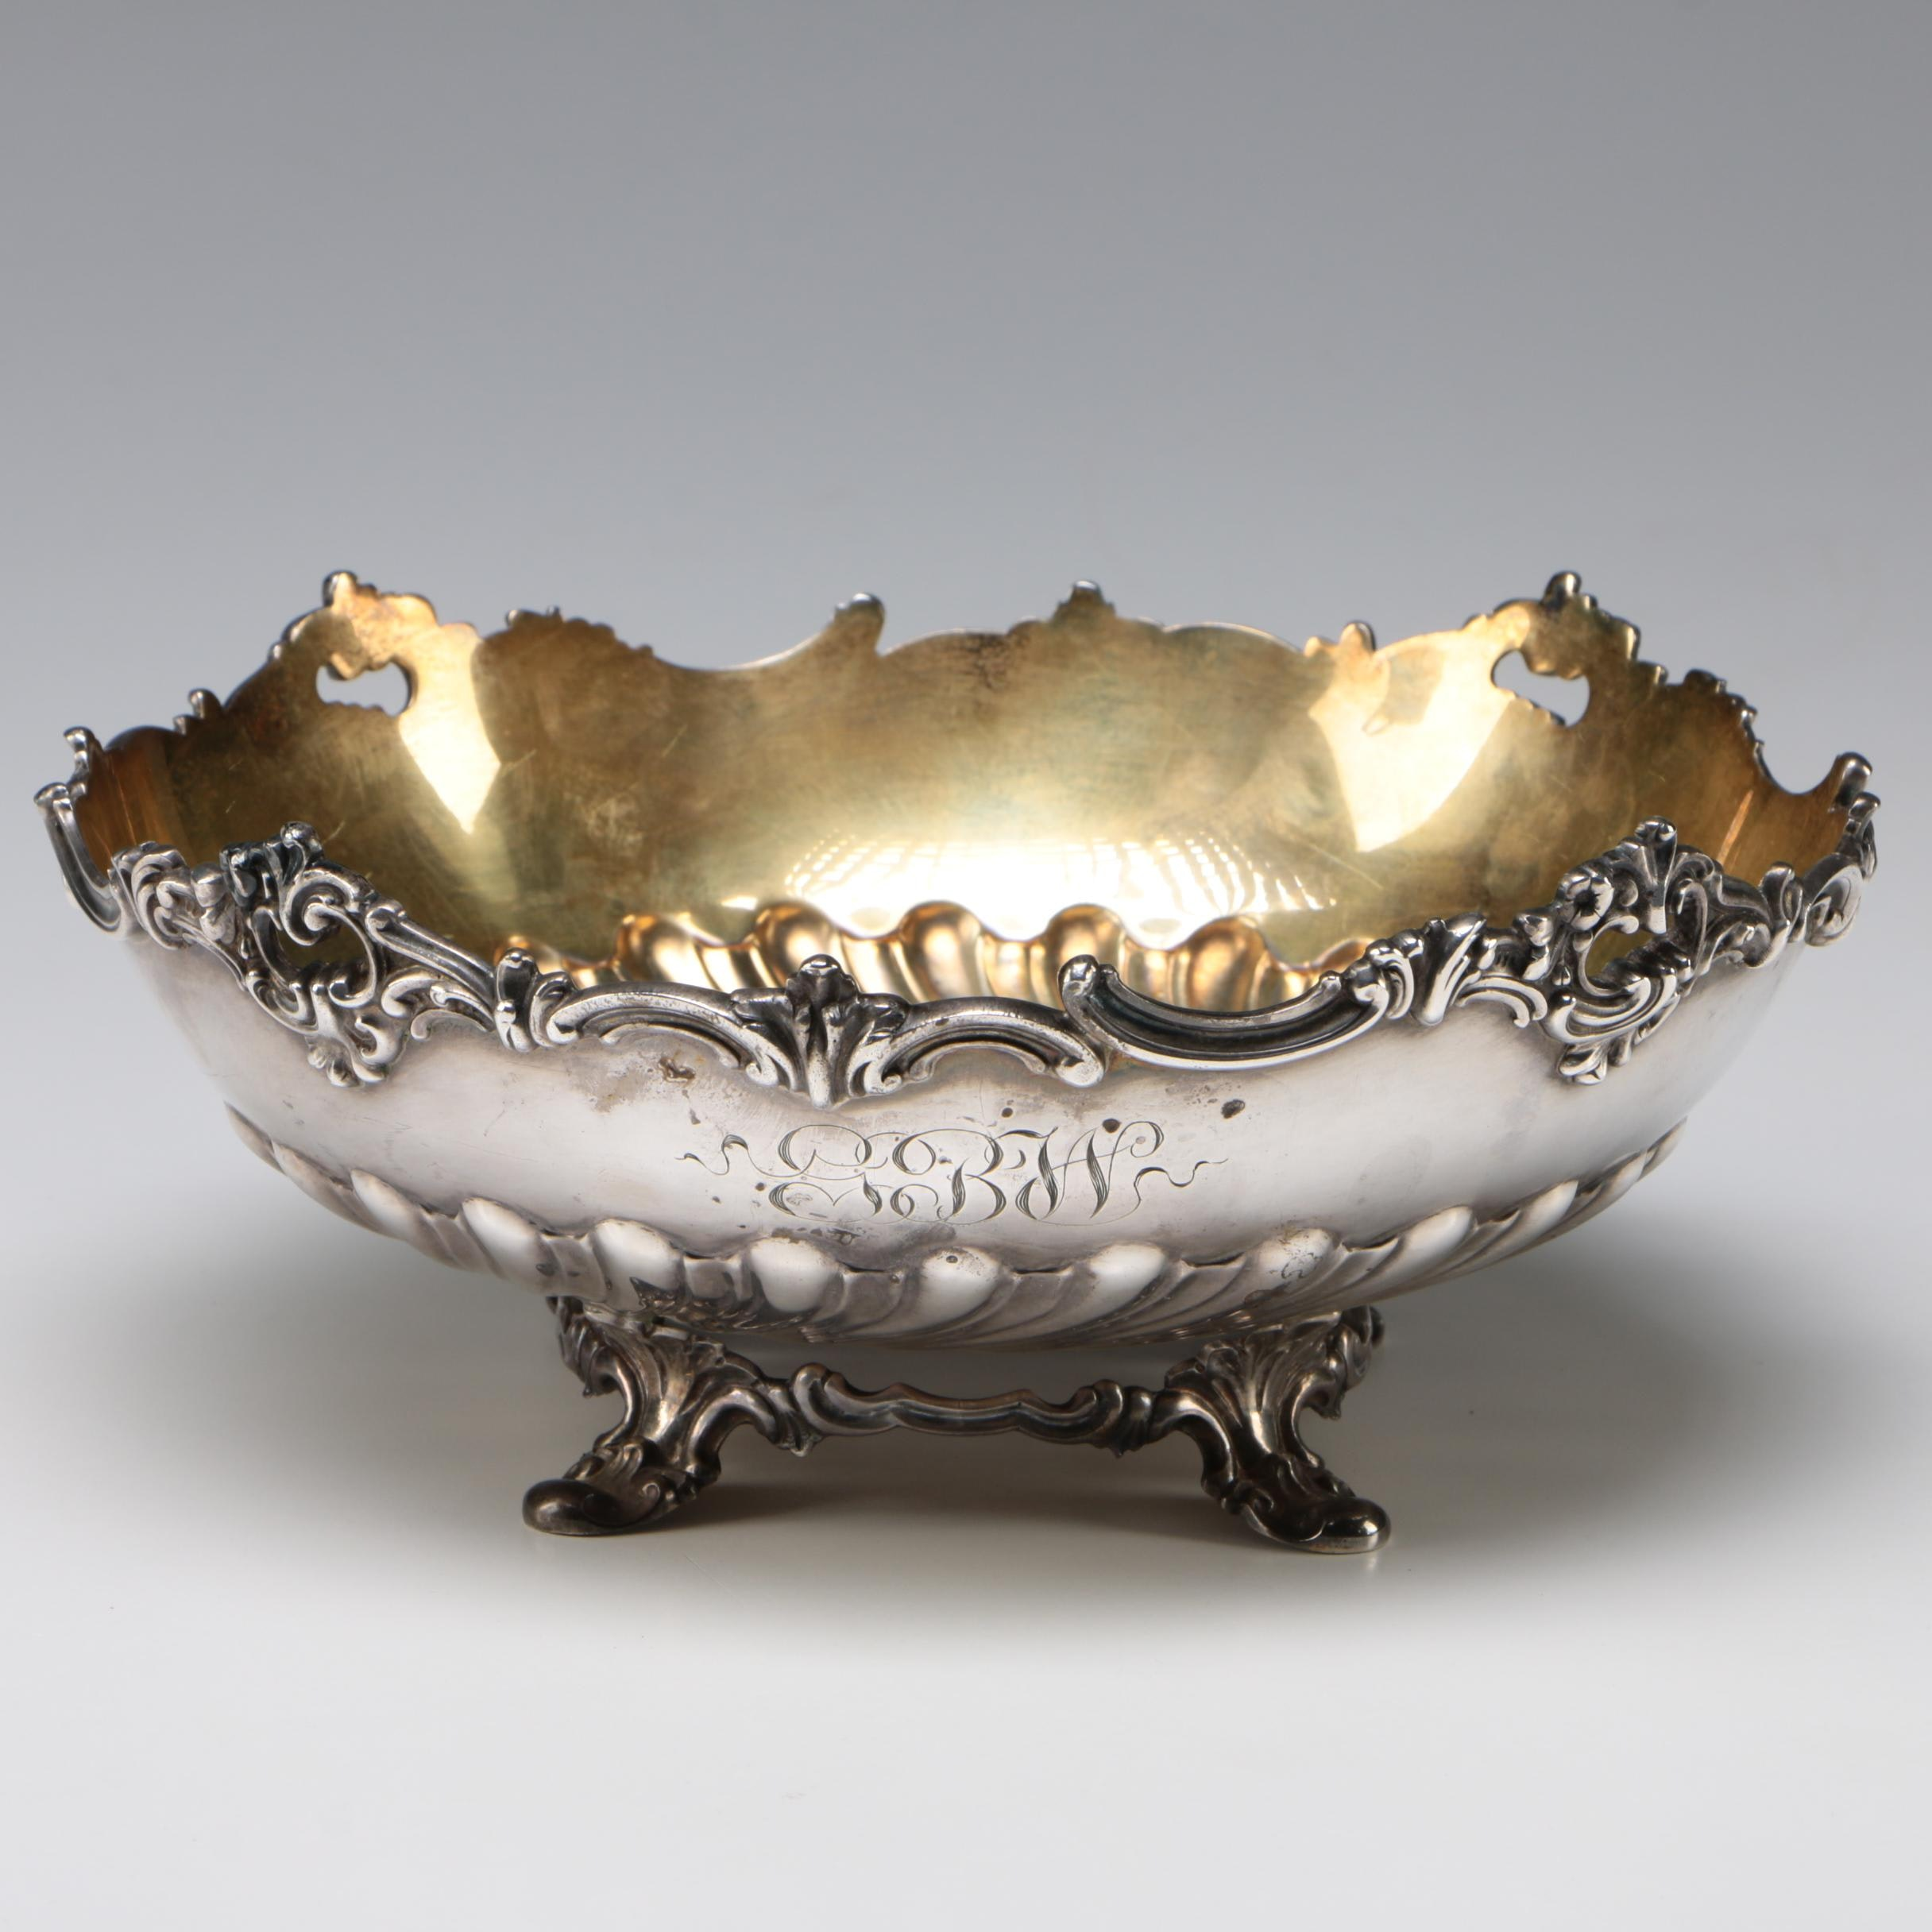 Gorham Sterling Silver Bowl with Gold Wash Interior, 1892